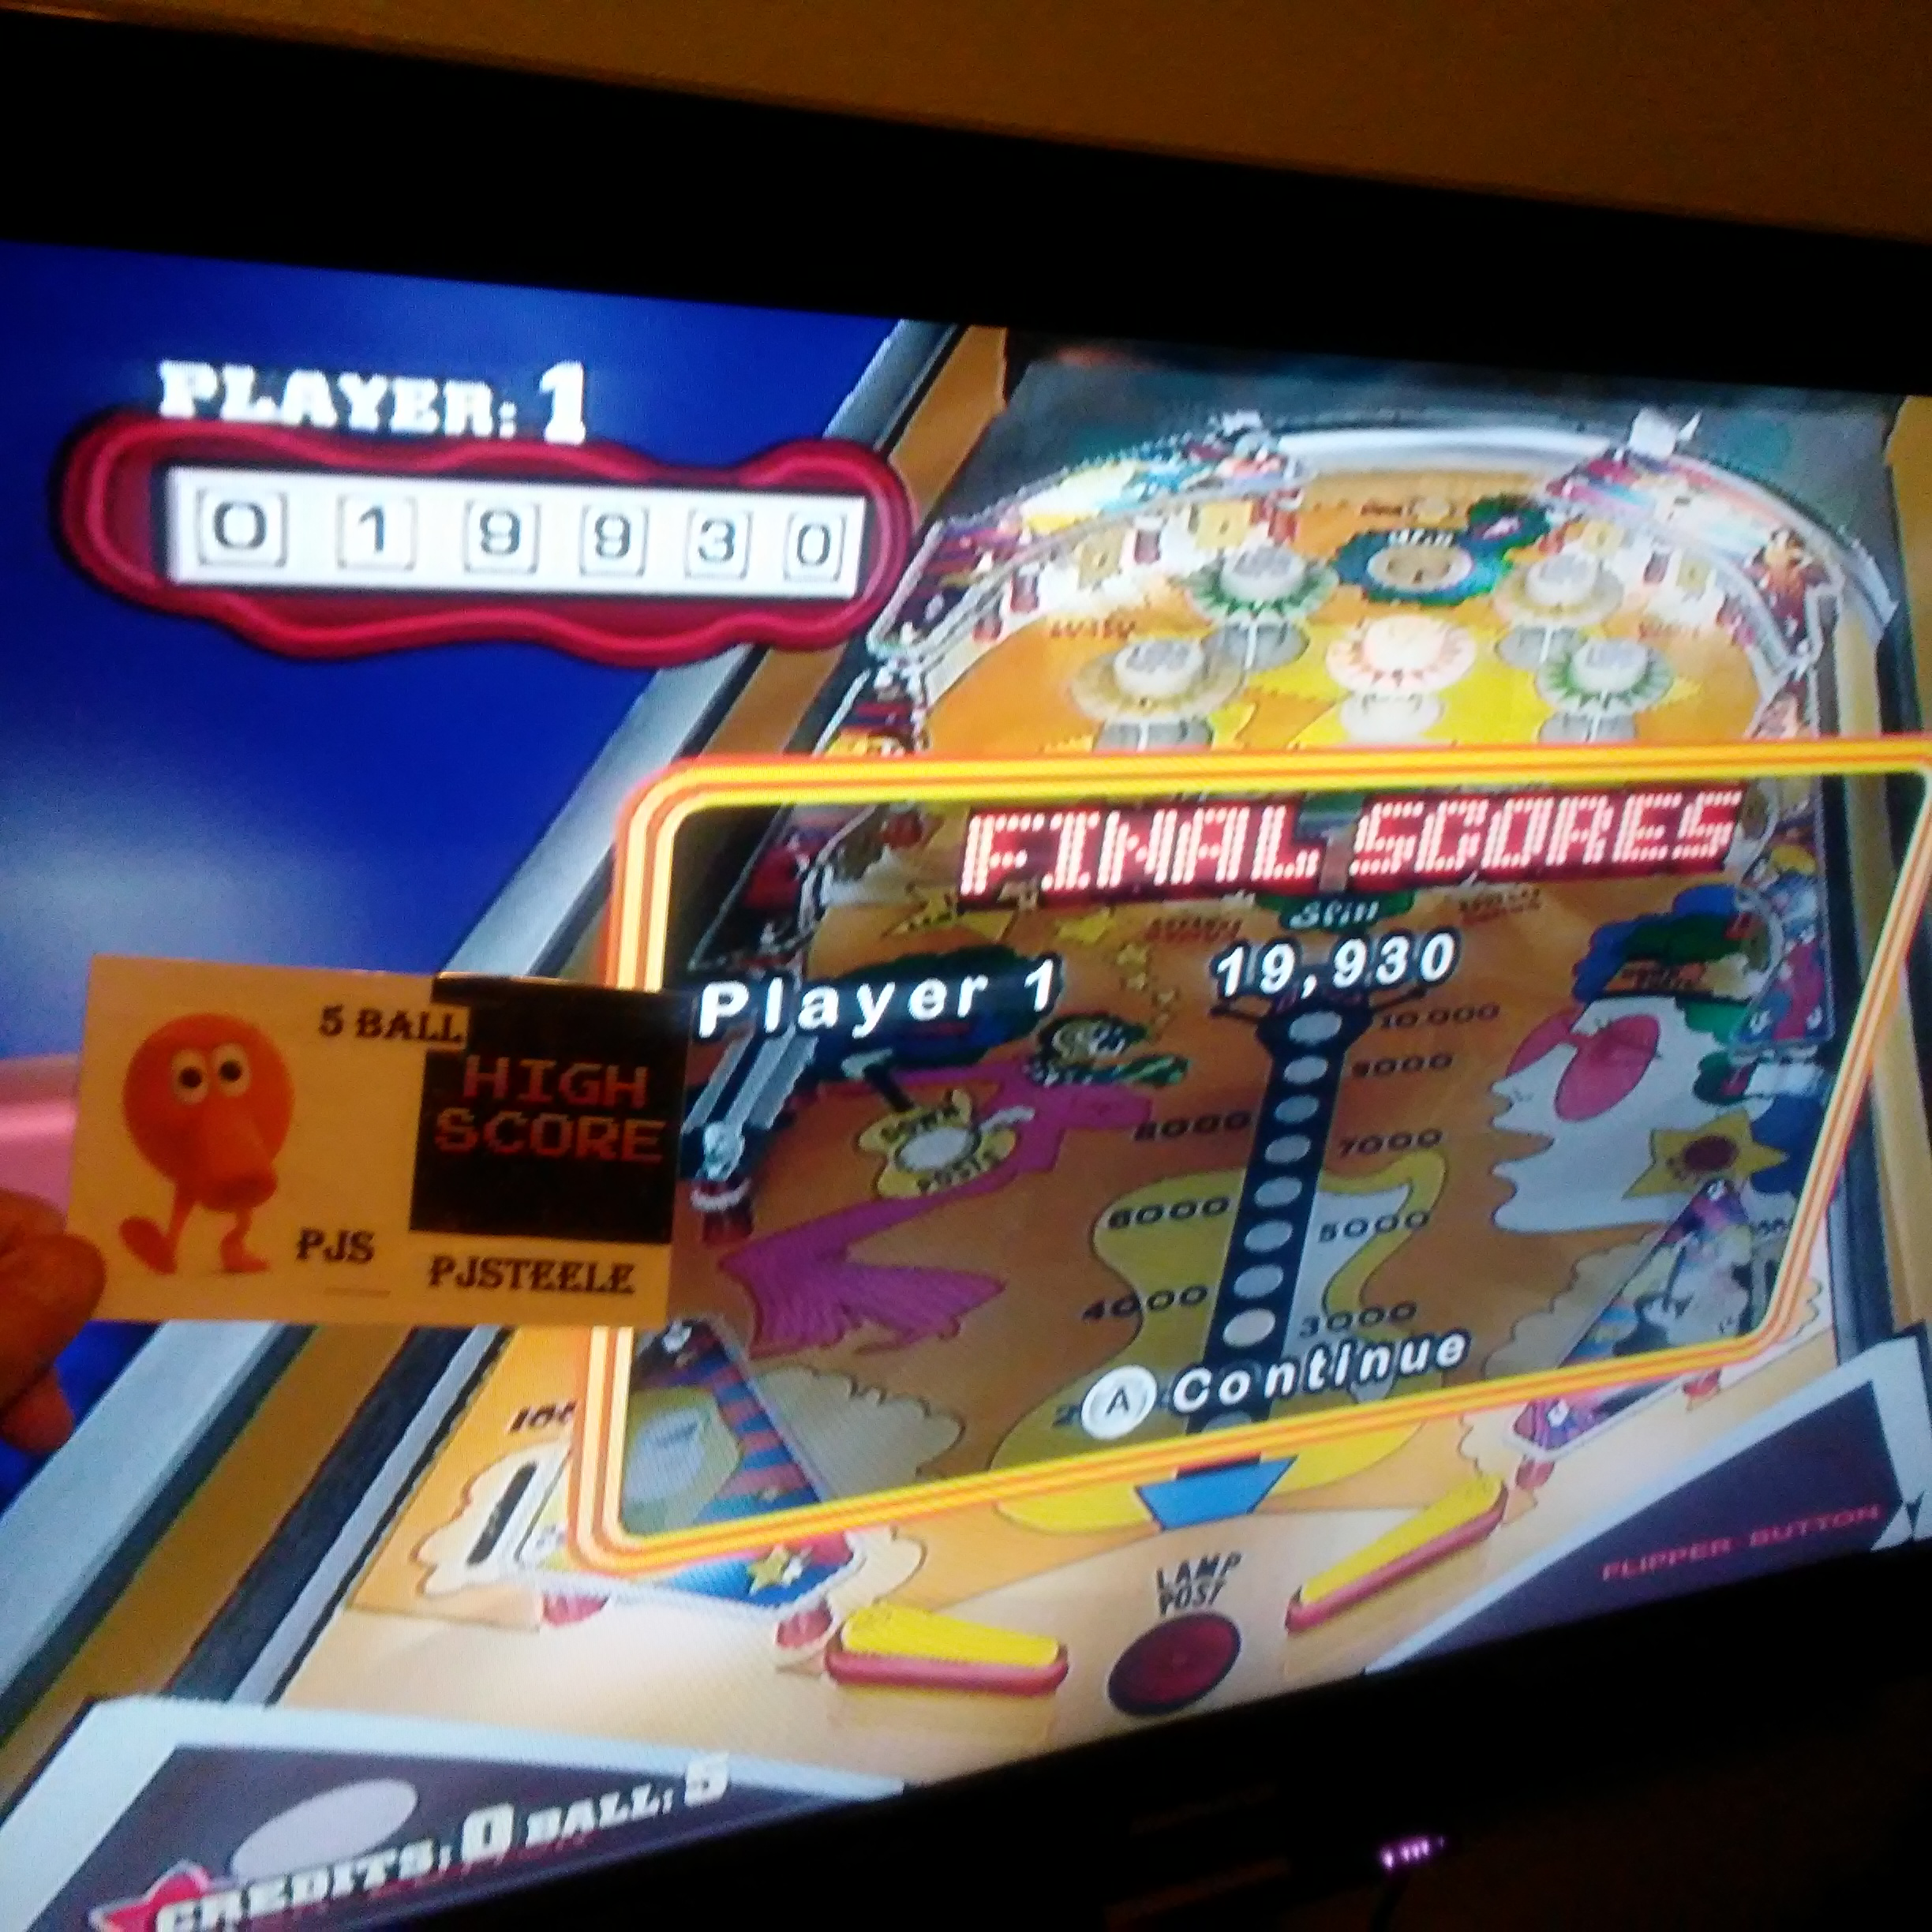 Pjsteele: Pinball Hall of Fame: The Williams Collection: Jive Time (Wii) 19,930 points on 2018-02-18 00:05:10